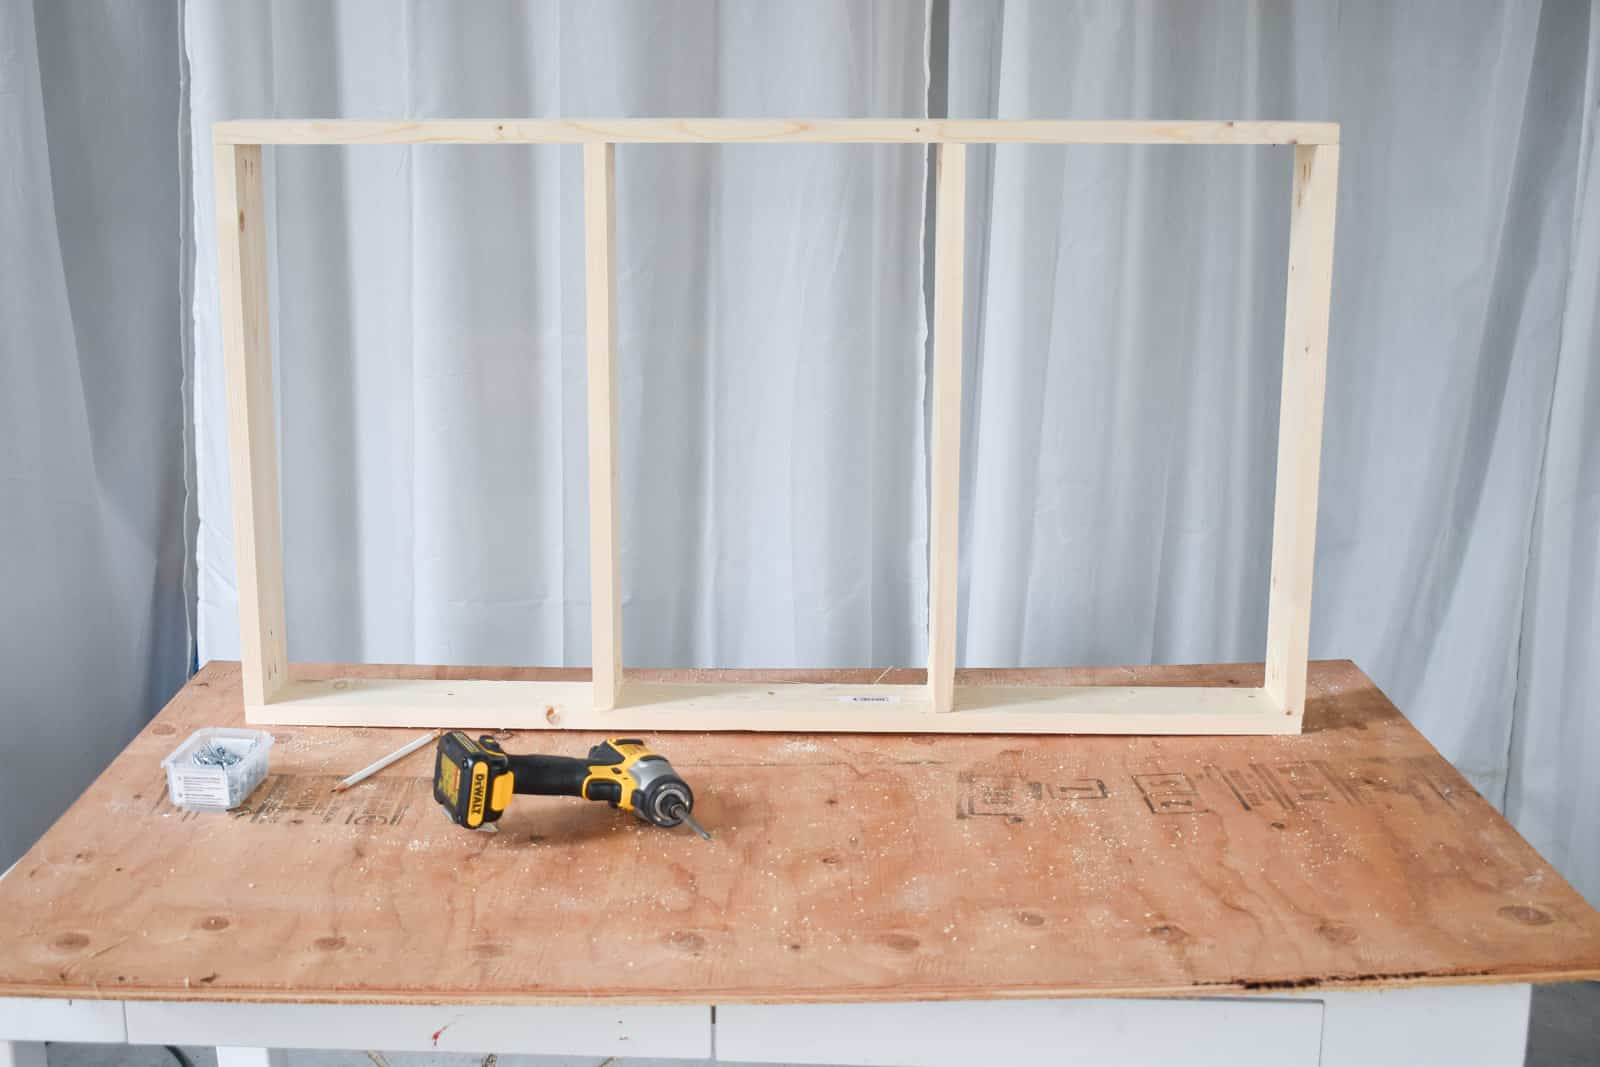 end pieces for daybed built like wall frame